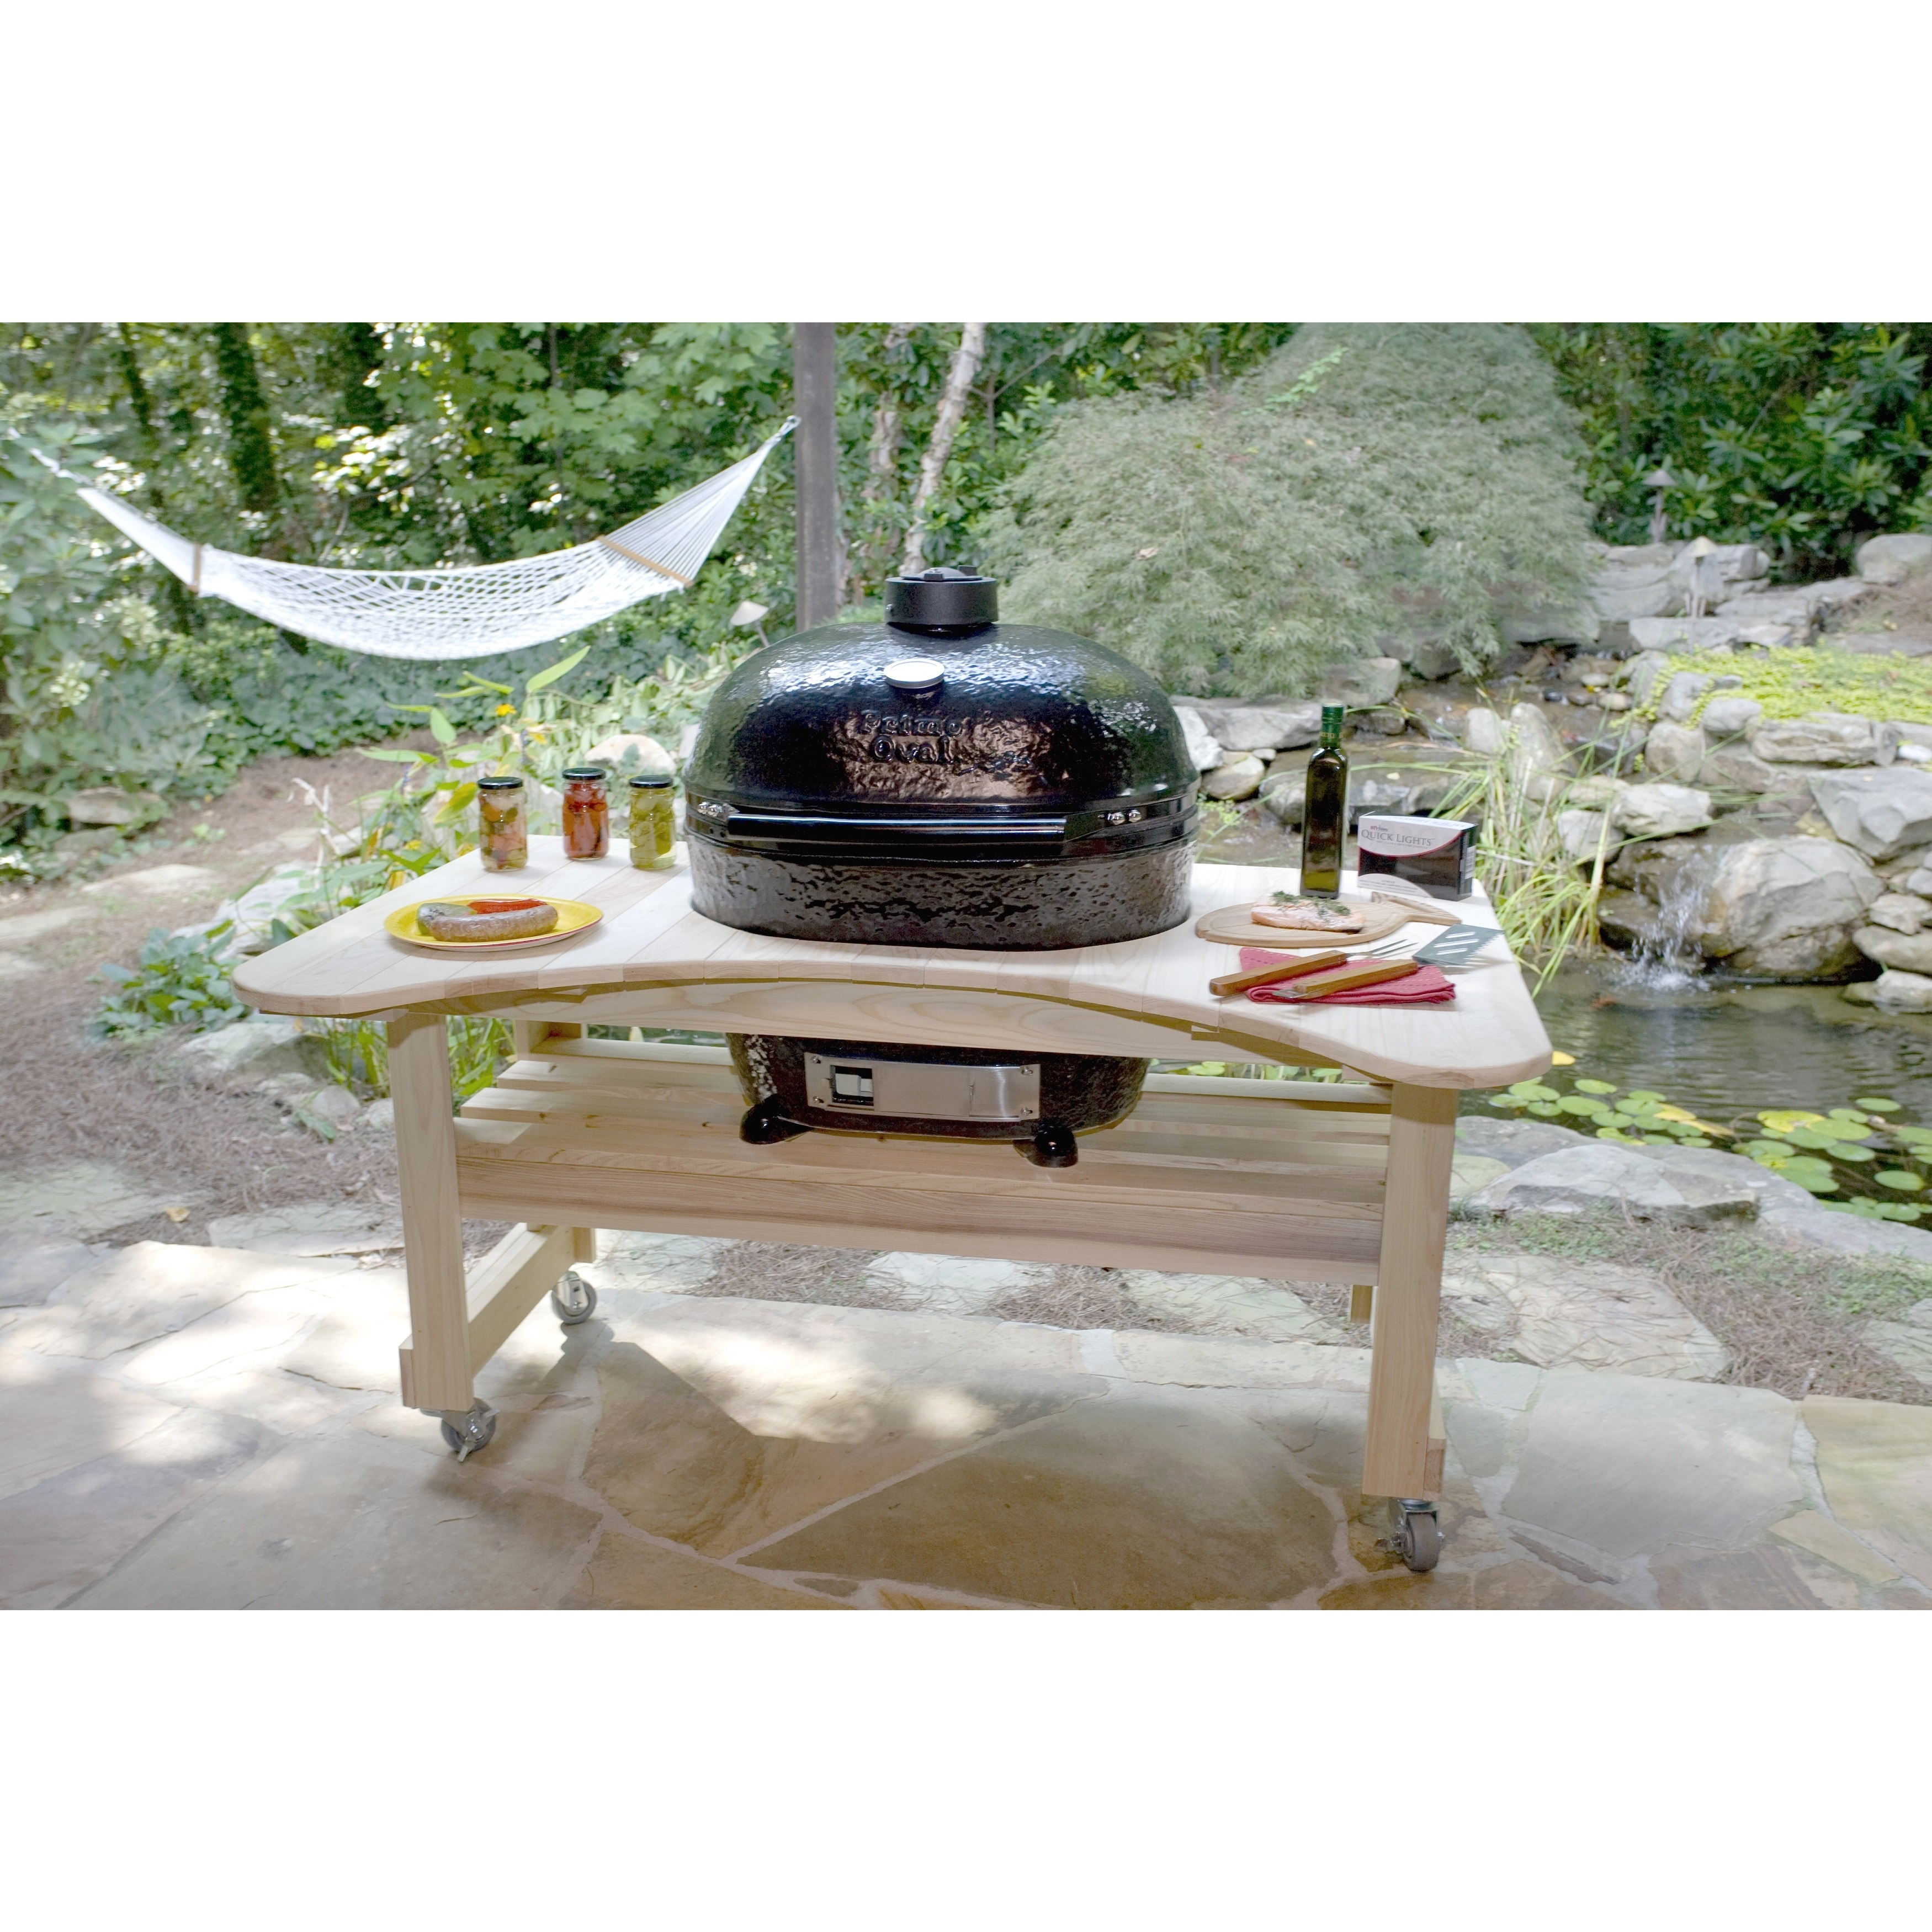 Primo oval lg 300 kamado style ceramic grill and smoker free primo oval lg 300 kamado style ceramic grill and smoker free shipping today overstock 16399297 dailygadgetfo Images